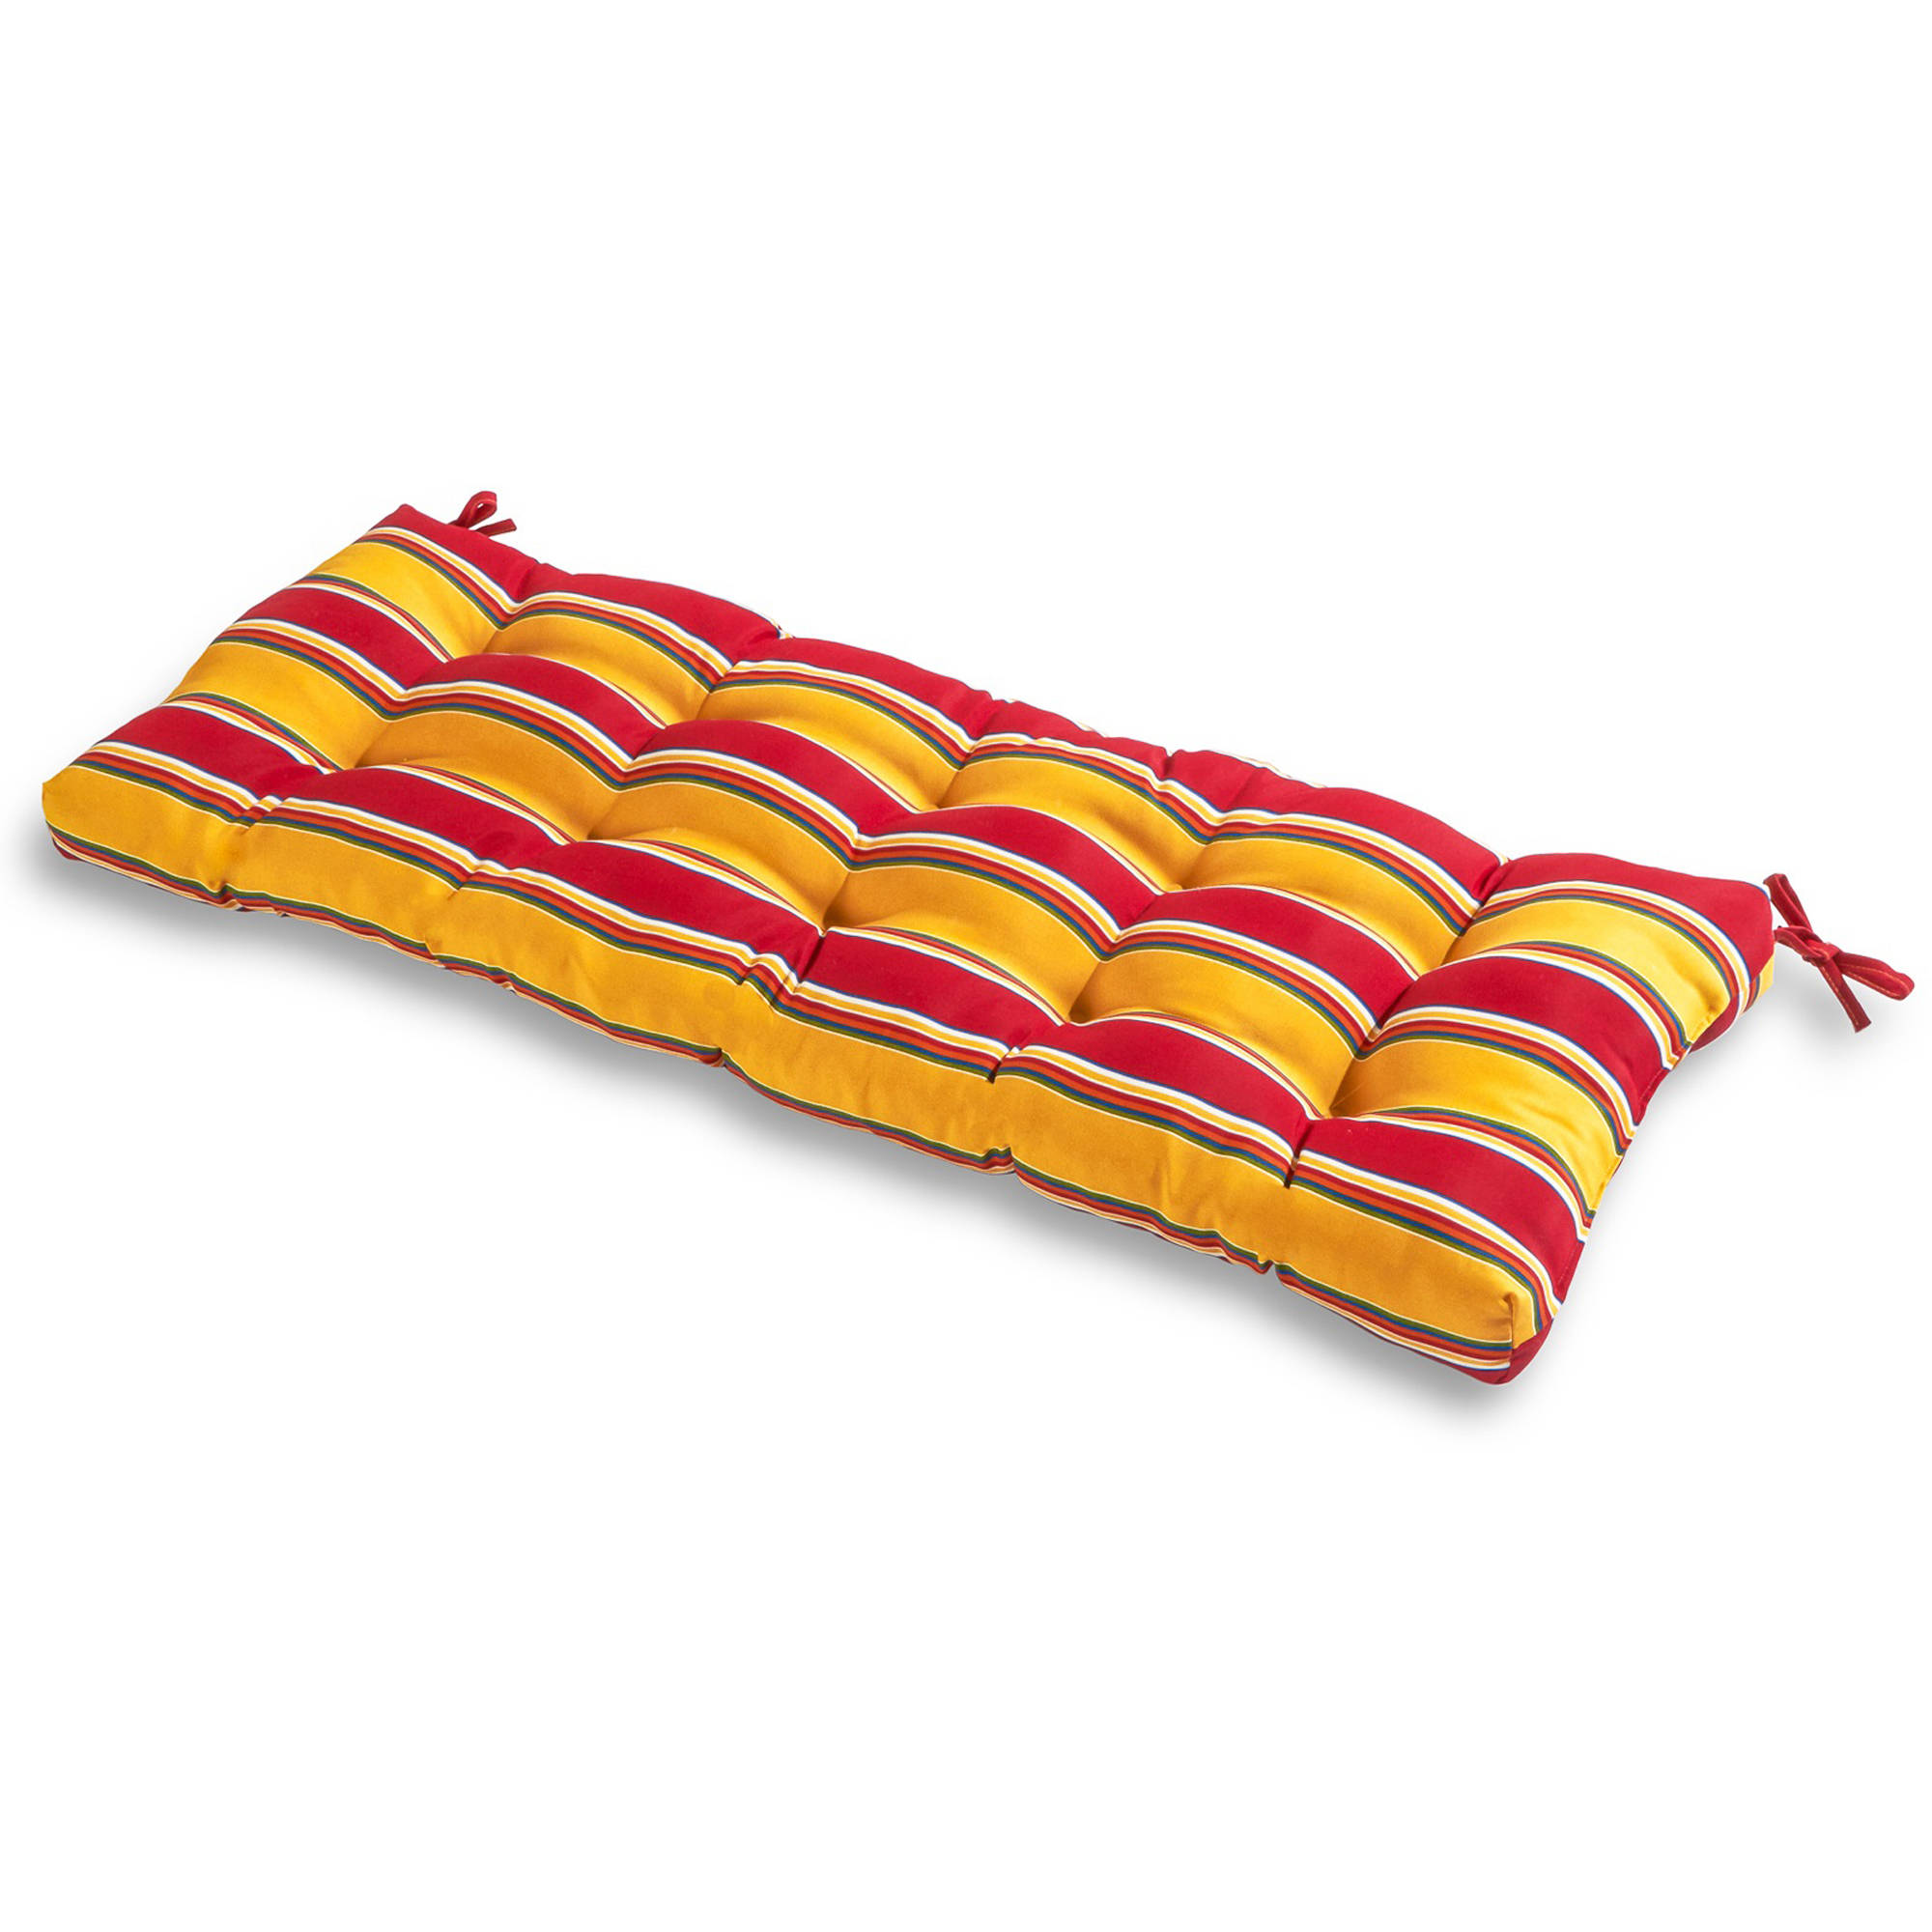 "Greendale Home Fashions 51"" Outdoor Bench Cushion, Carnival Stripe"